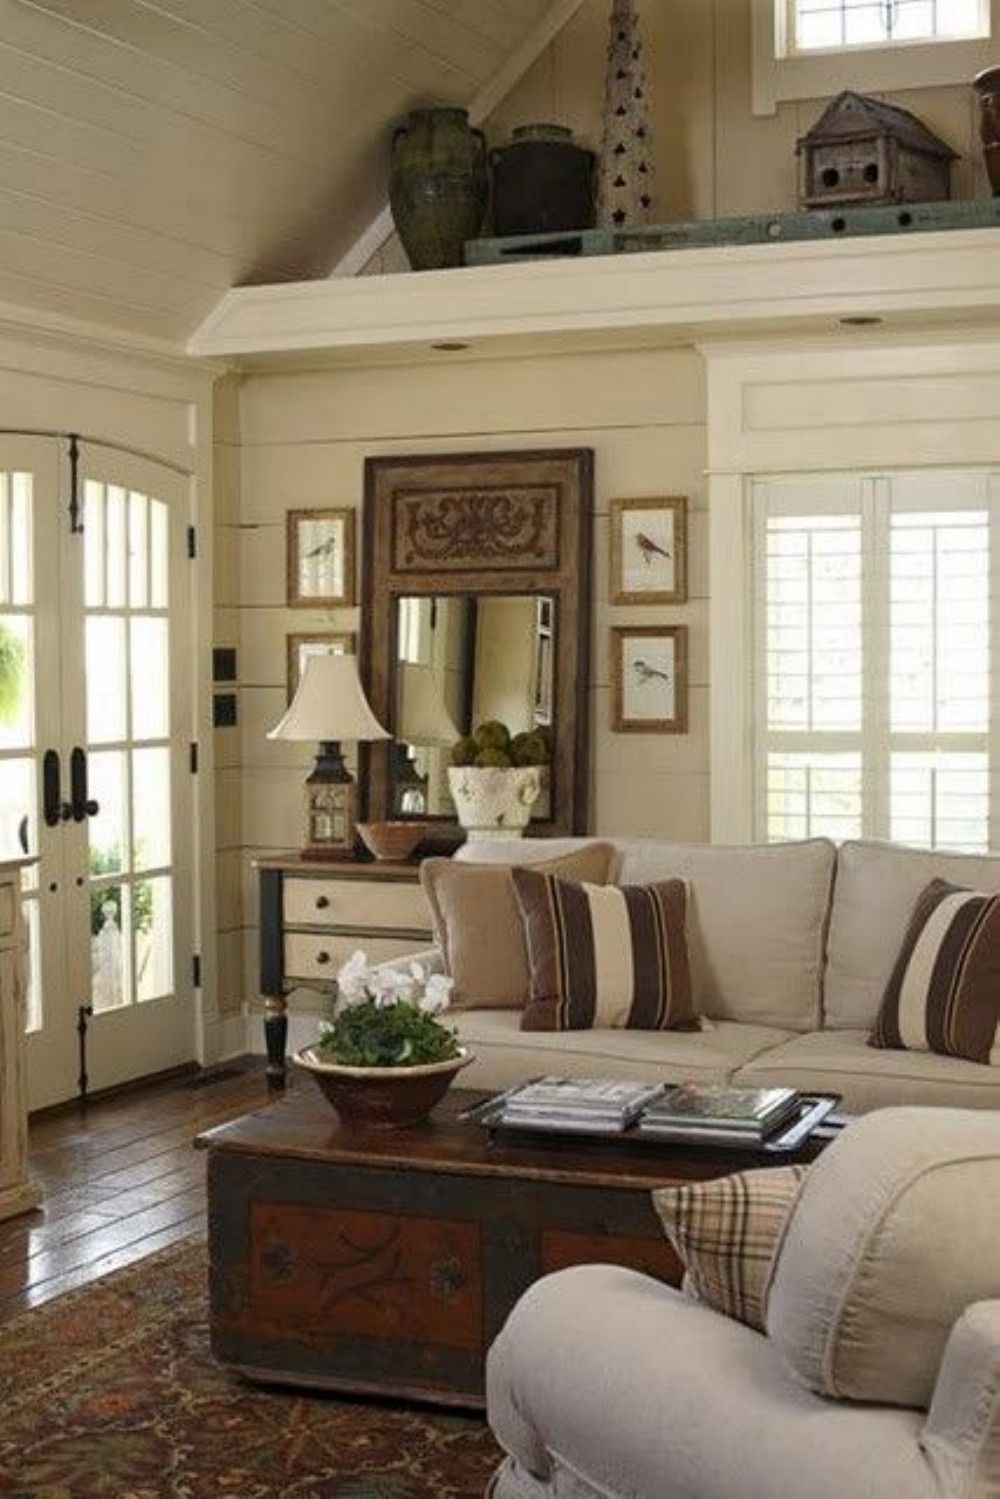 Delightful Cool 45 French Country Living Room Design Ideas  Https://cooarchitecture.com/2017/04/06/45 French Country Living Room Design  Ideas/